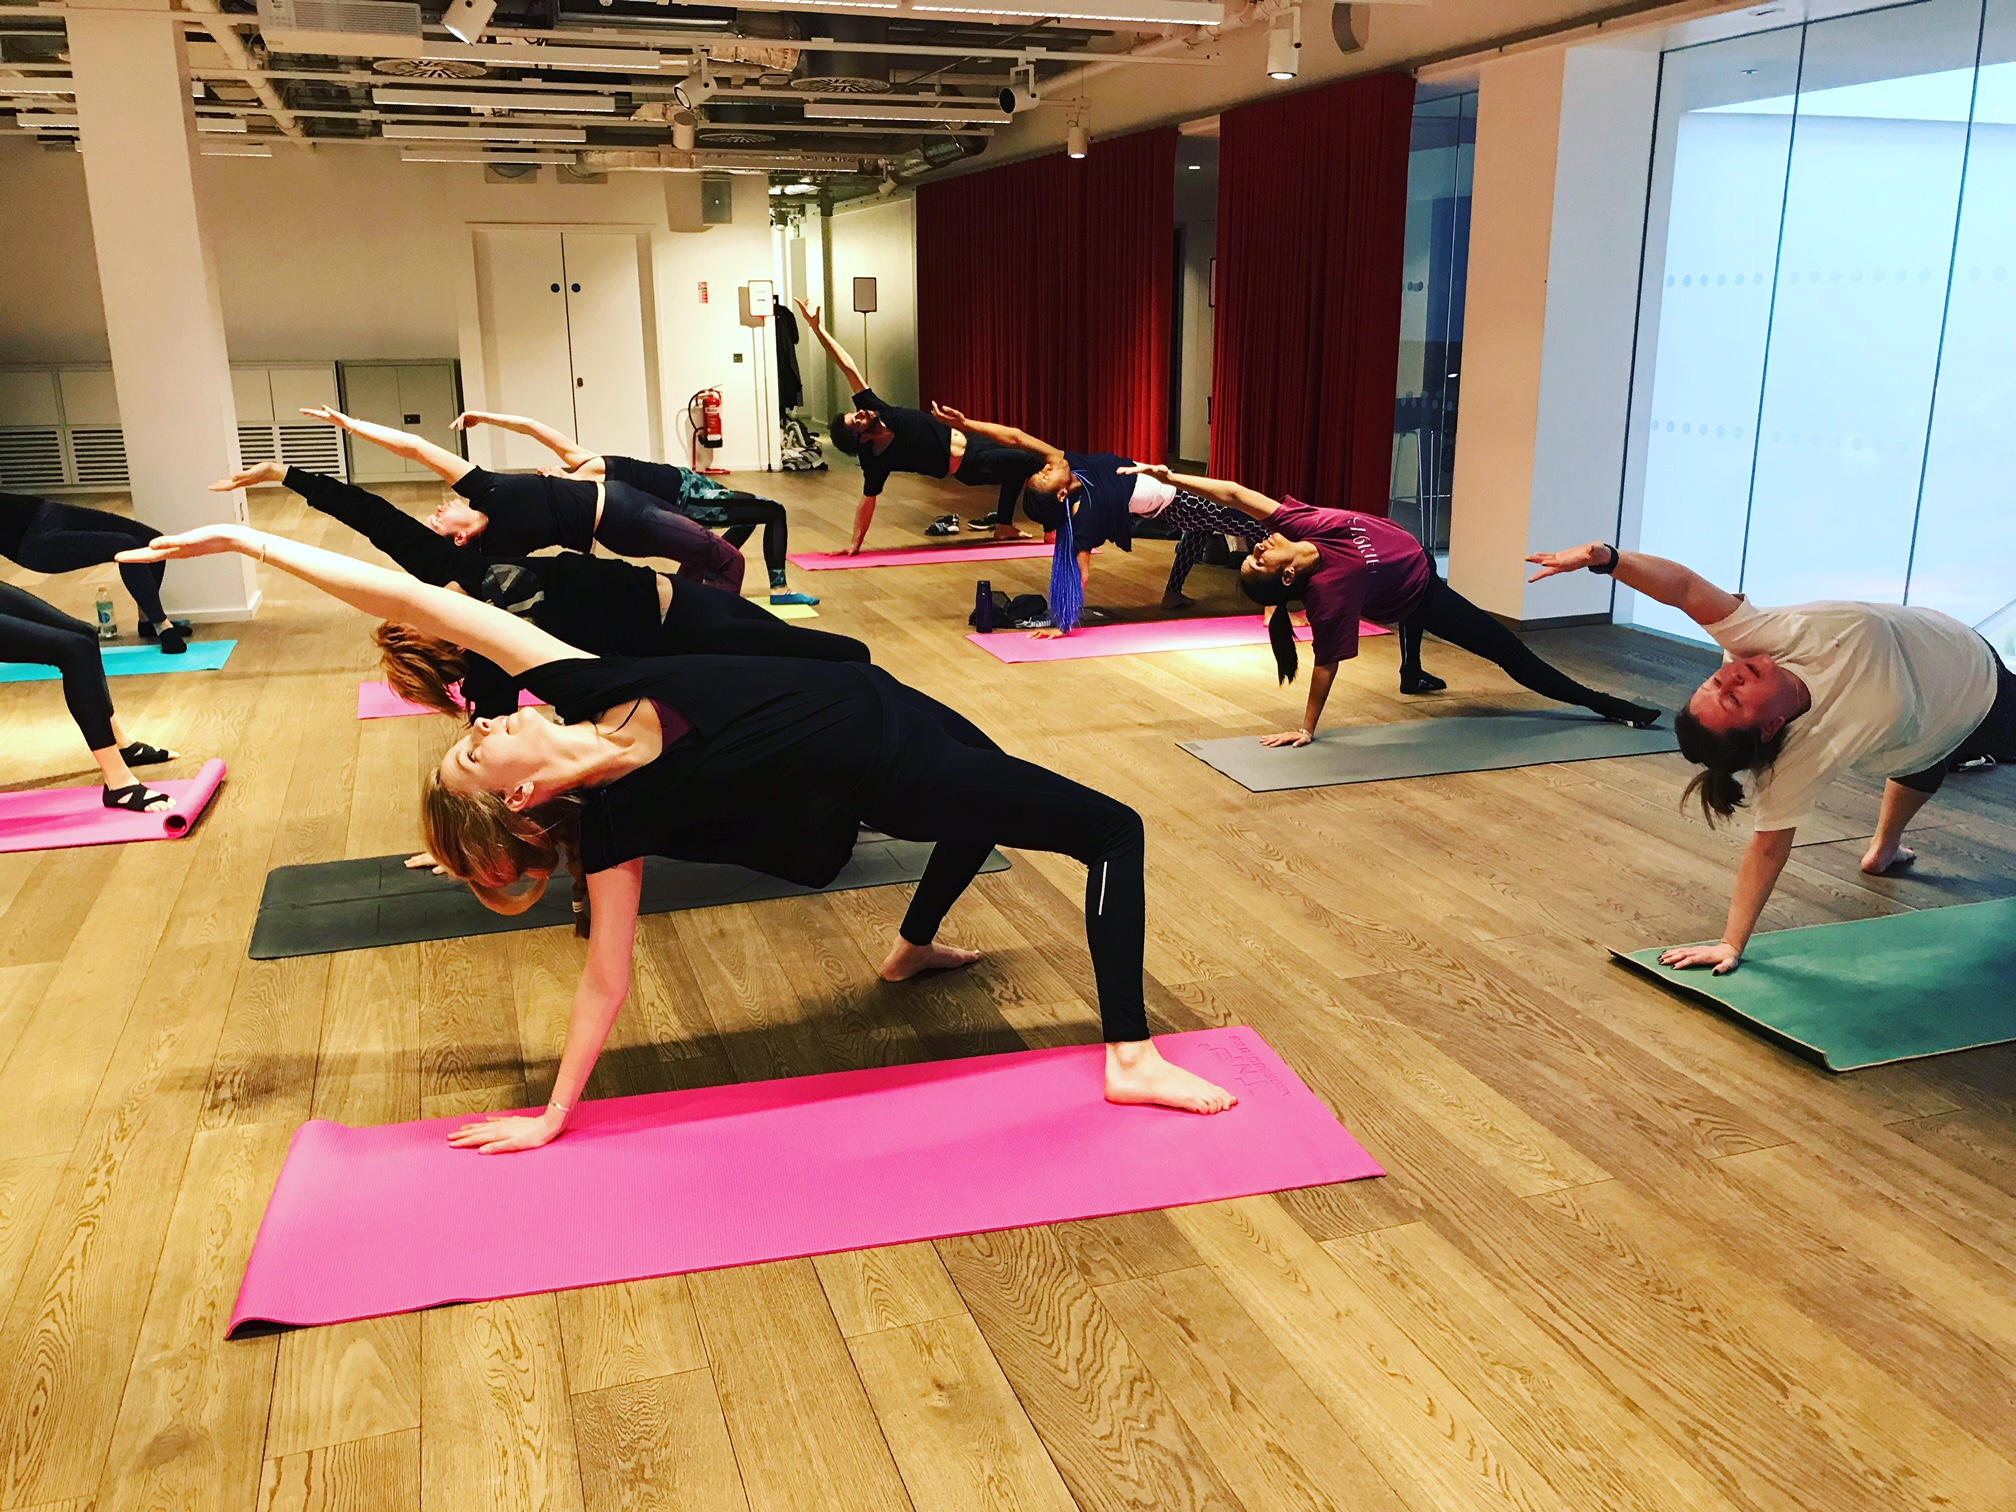 6 Week residency at Foyles Bookstore in Charing Cross Road. We held the first ever Yoga classes in store!   To come along to a class book via the foyles.co.uk website!